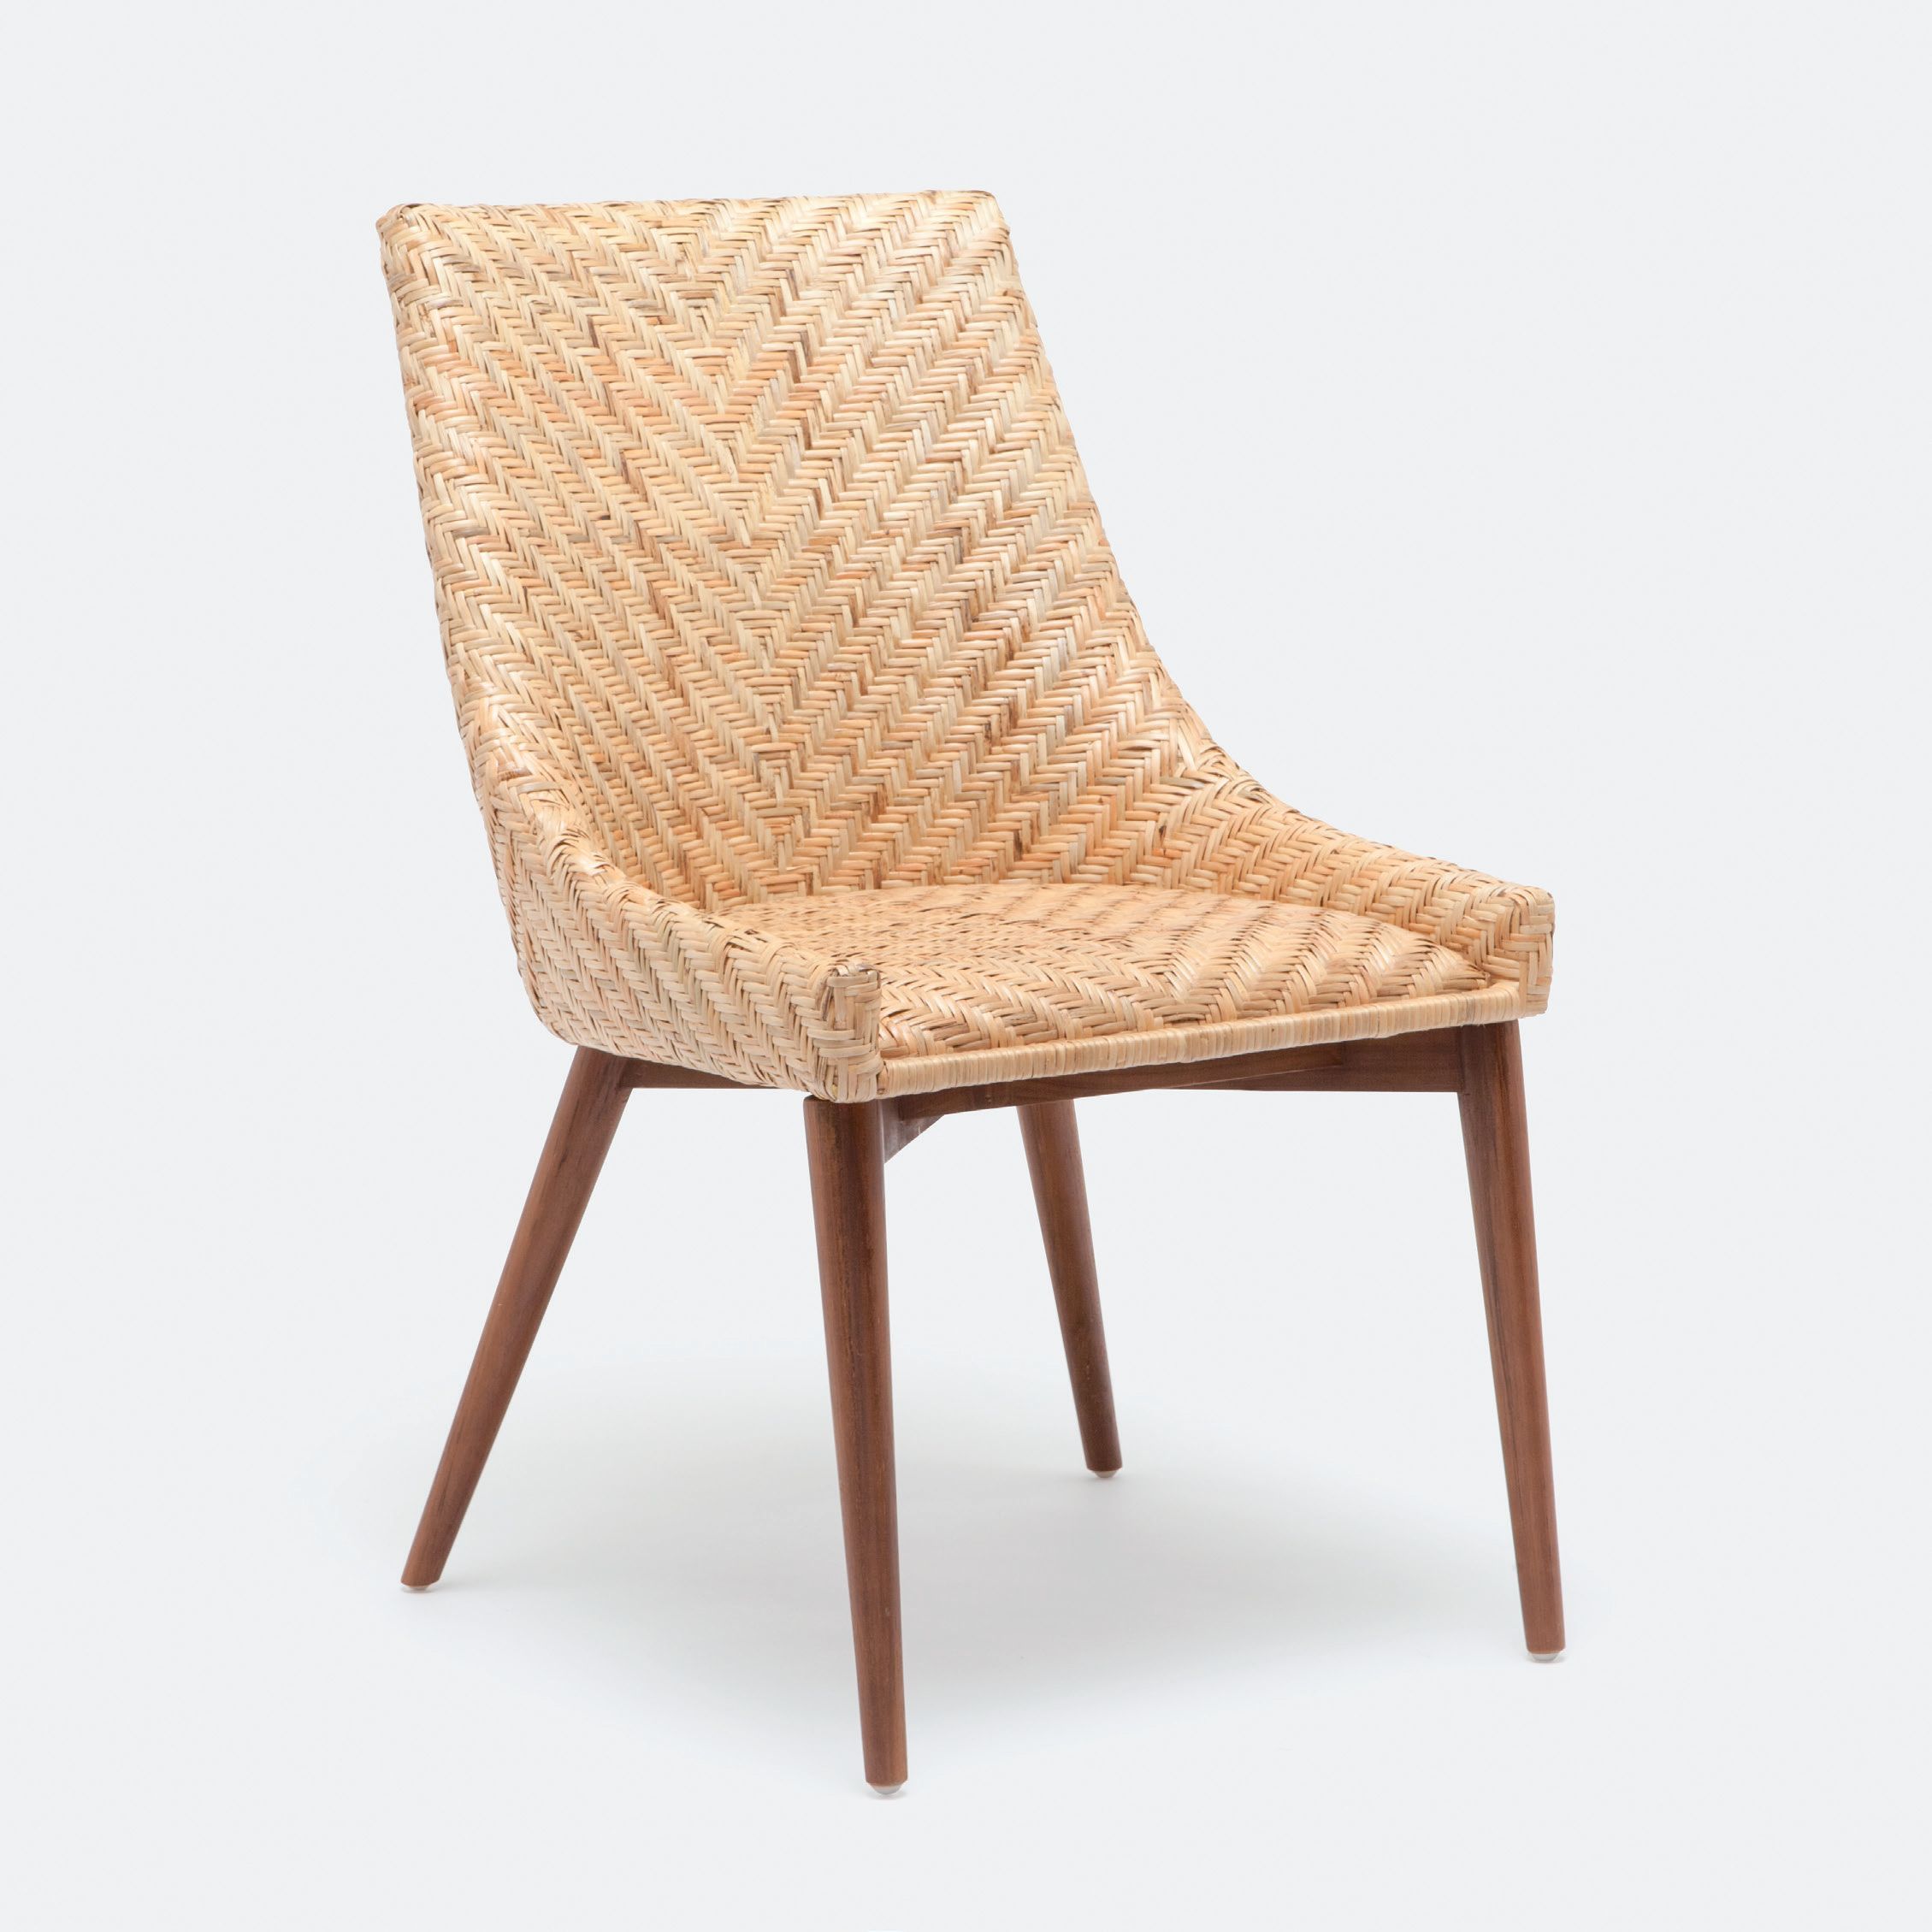 Rattan Chairs Woven Rattan Dining Chair Mecox Gardens